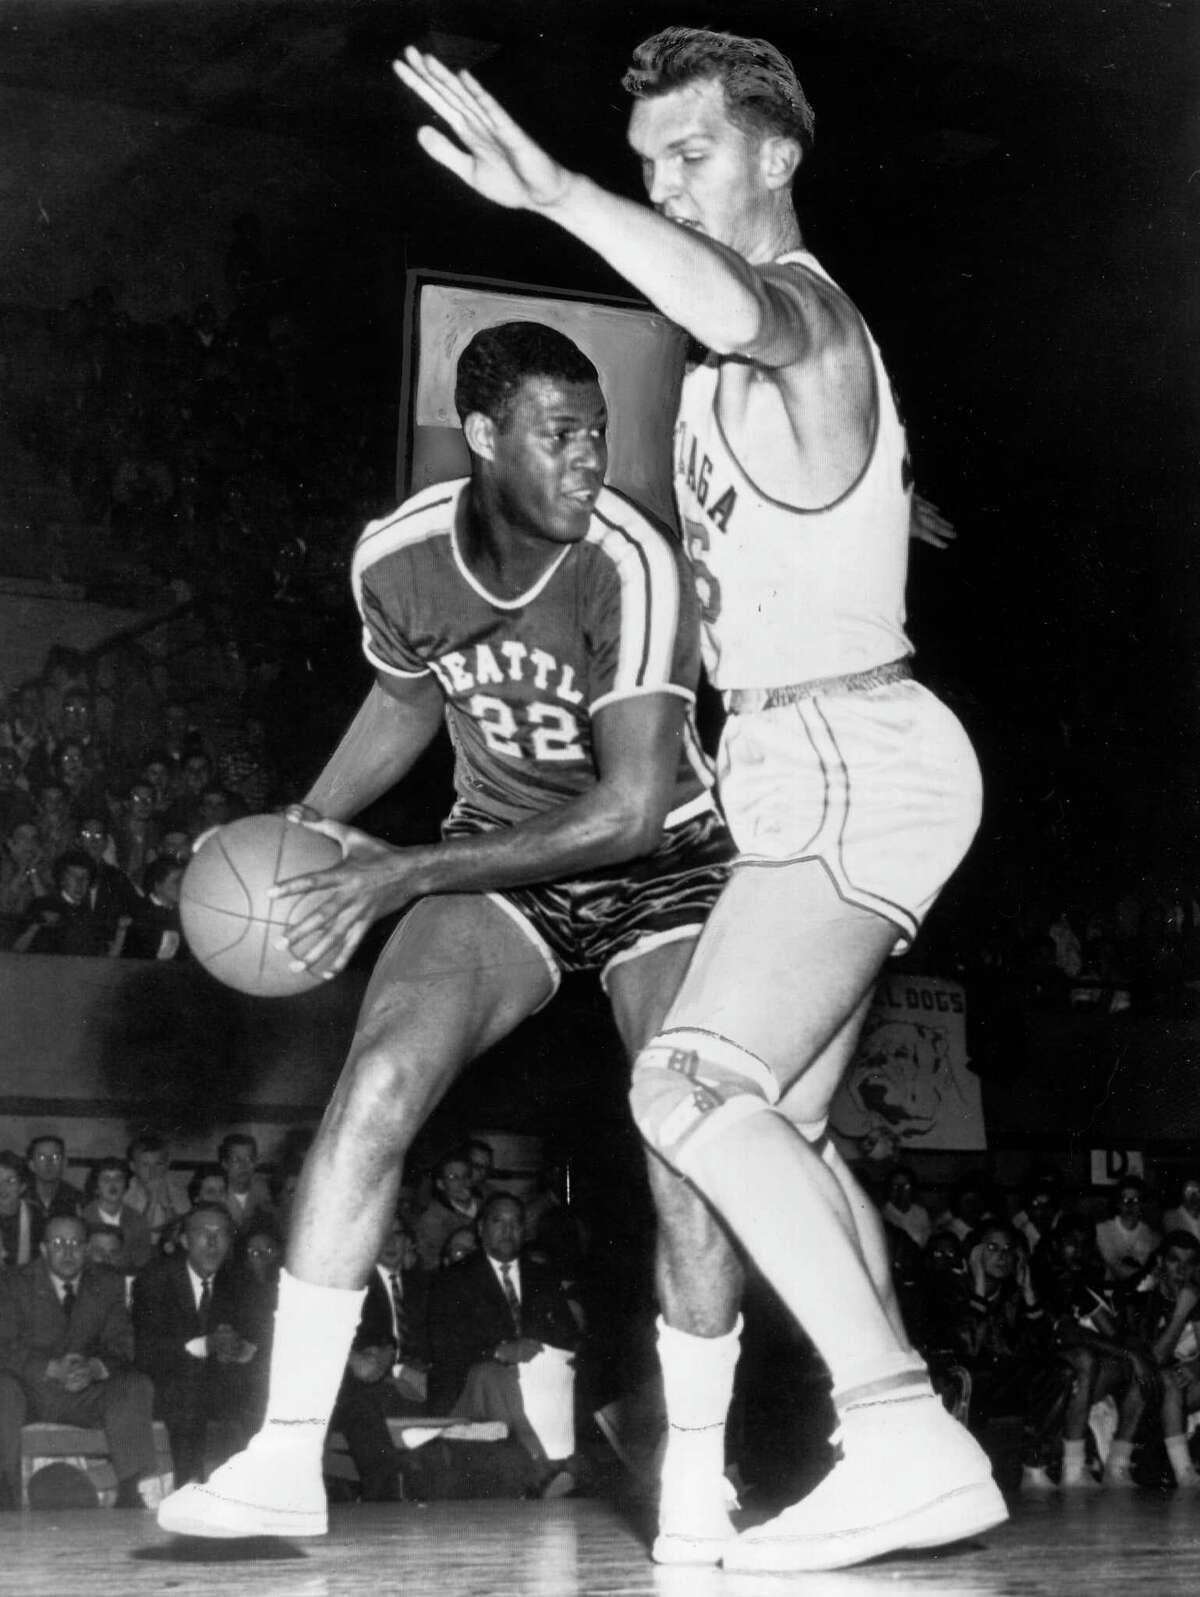 The 6-foot-5 Elgin Baylor (L) playing for Seattle University goes up against 7-foot 3-inch center Jean LaFebvre playing for Gonzaga University in 1958. The following year, Baylor would be serving a 6-month tour of active duty, including time at Fort Sam Houston in San Antonio, before rejoining the Los Angeles Lakers.